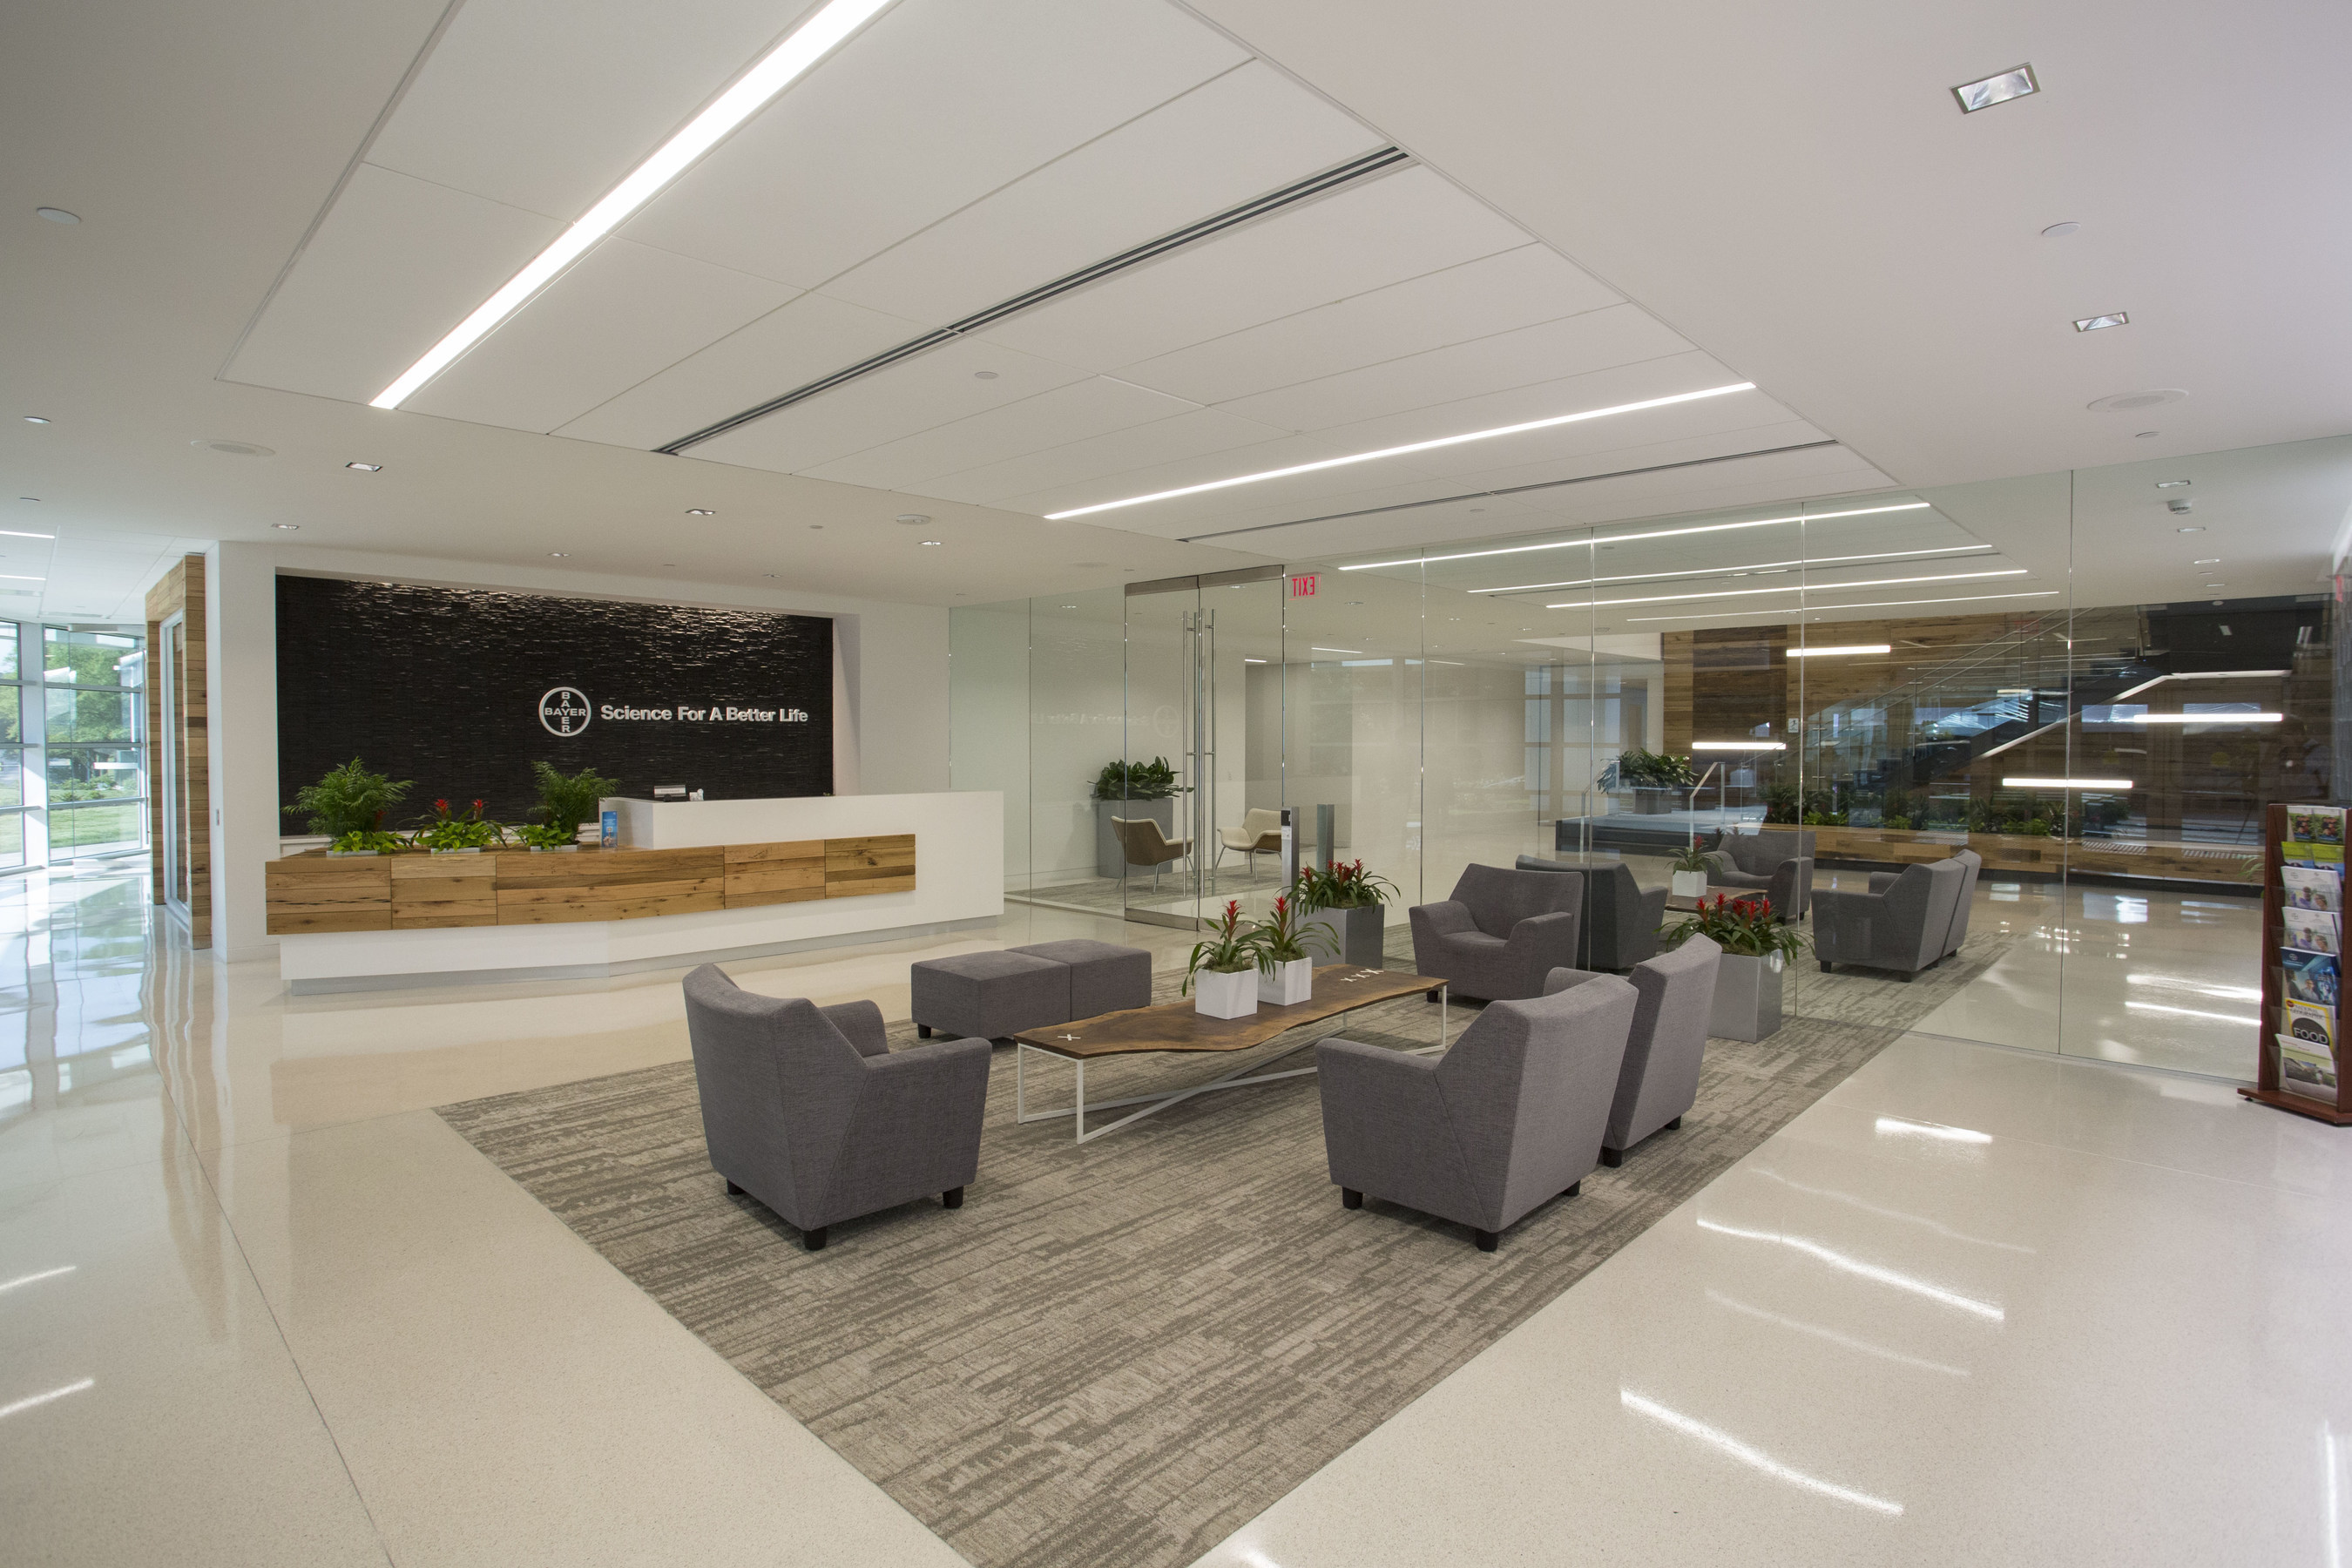 The newly renovated Bayer CropScience headquarters boasts a modern and open design where employees have the resources and space to work efficiently, as well as amenities further enhancing Bayer's reputation as one of the Triangle's best places to work.